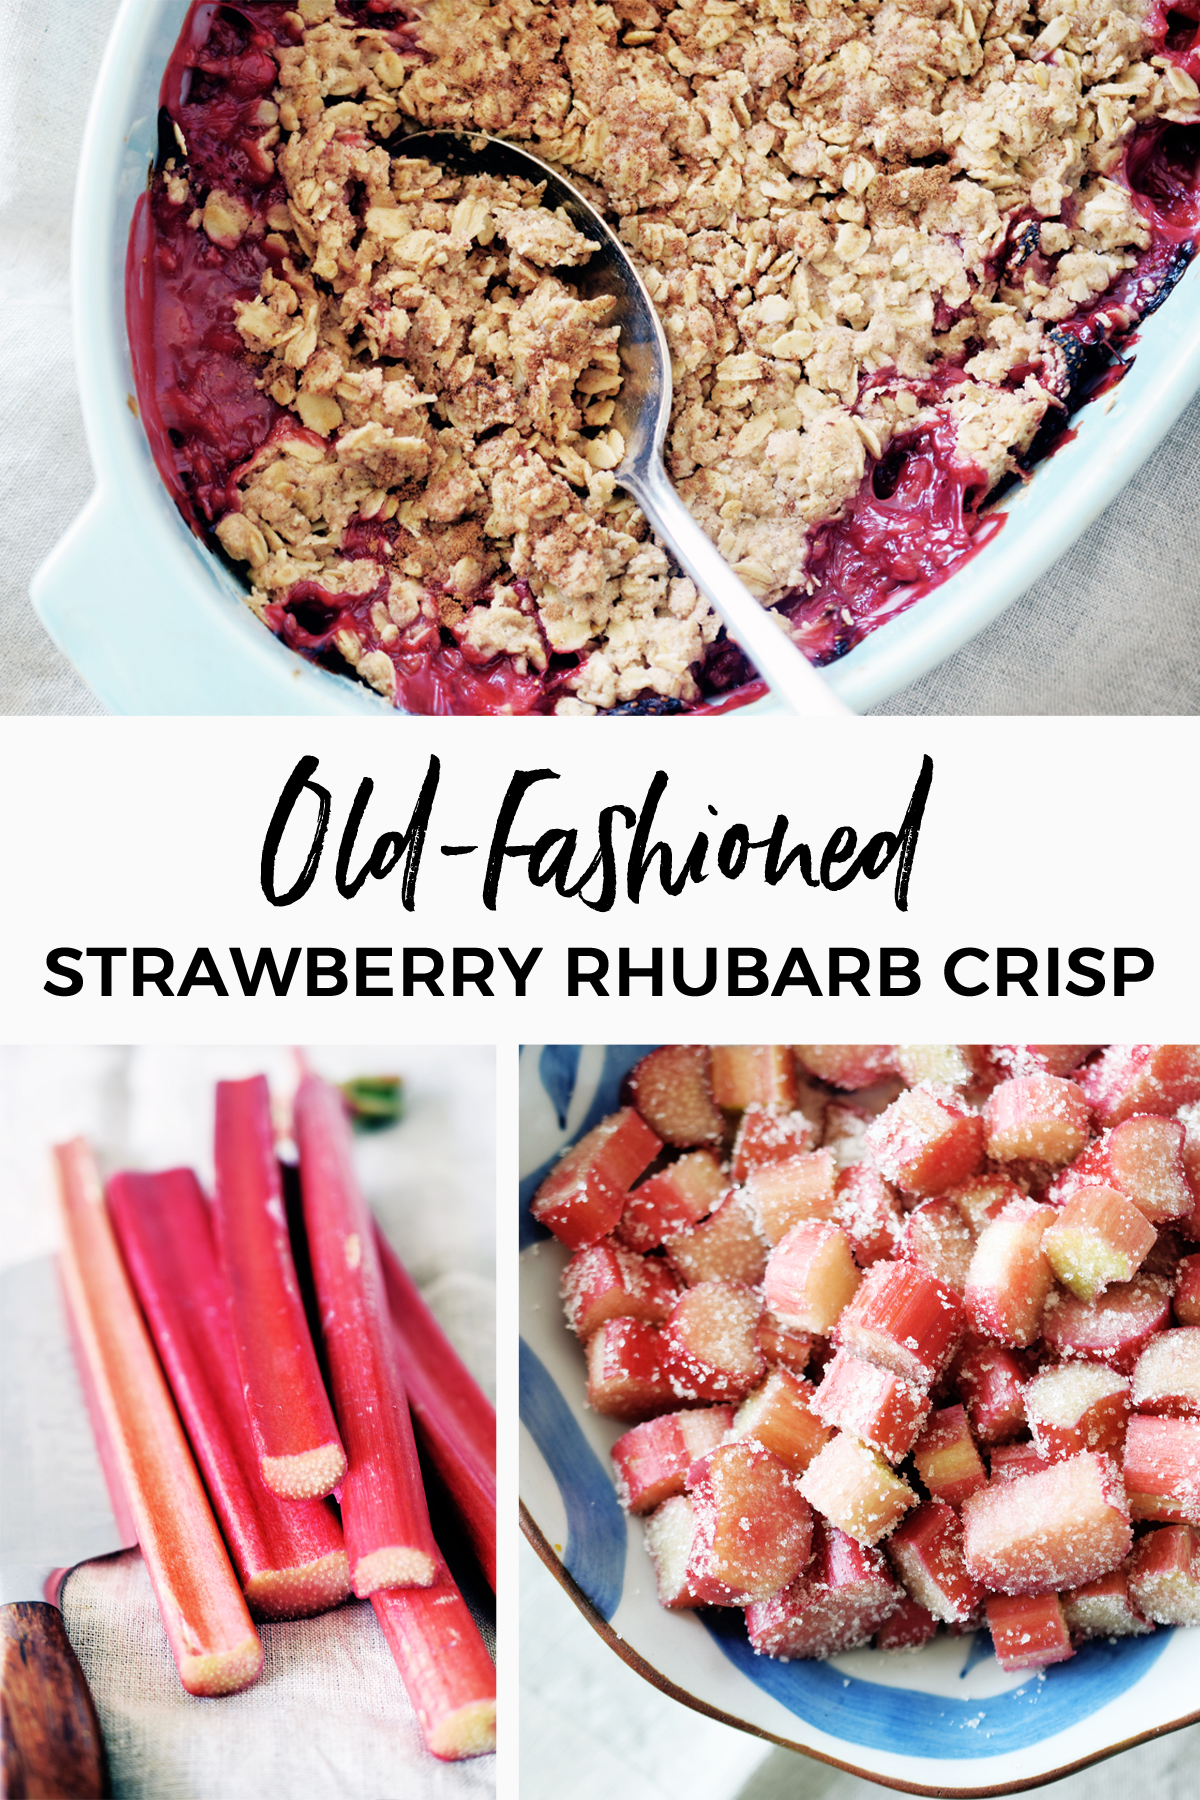 With a crispy topping and sweet in-season fruit, this Strawberry Rhubarb Crumble could not be easier or more perfect for a simple summer dessert. #crumble #rhubarb #strawberries